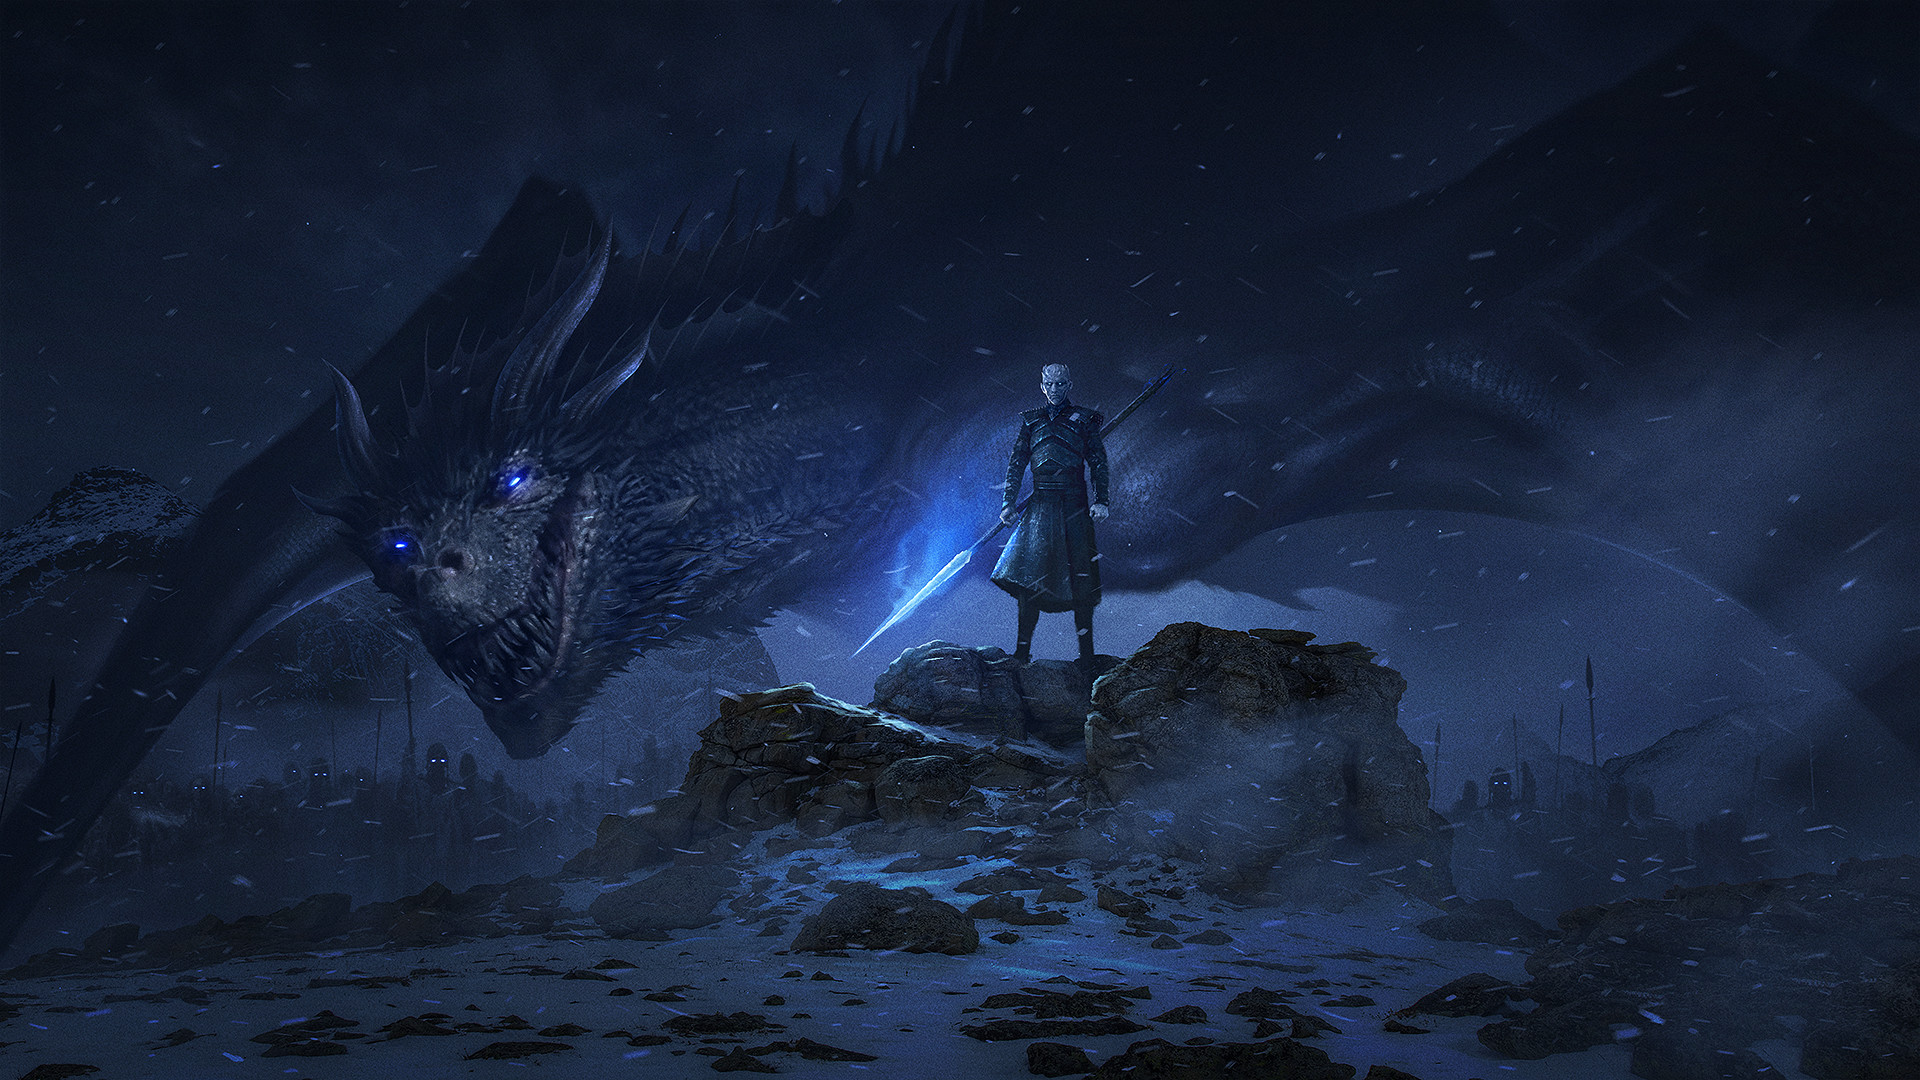 Game Of Thrones Season 8 Wallpaper